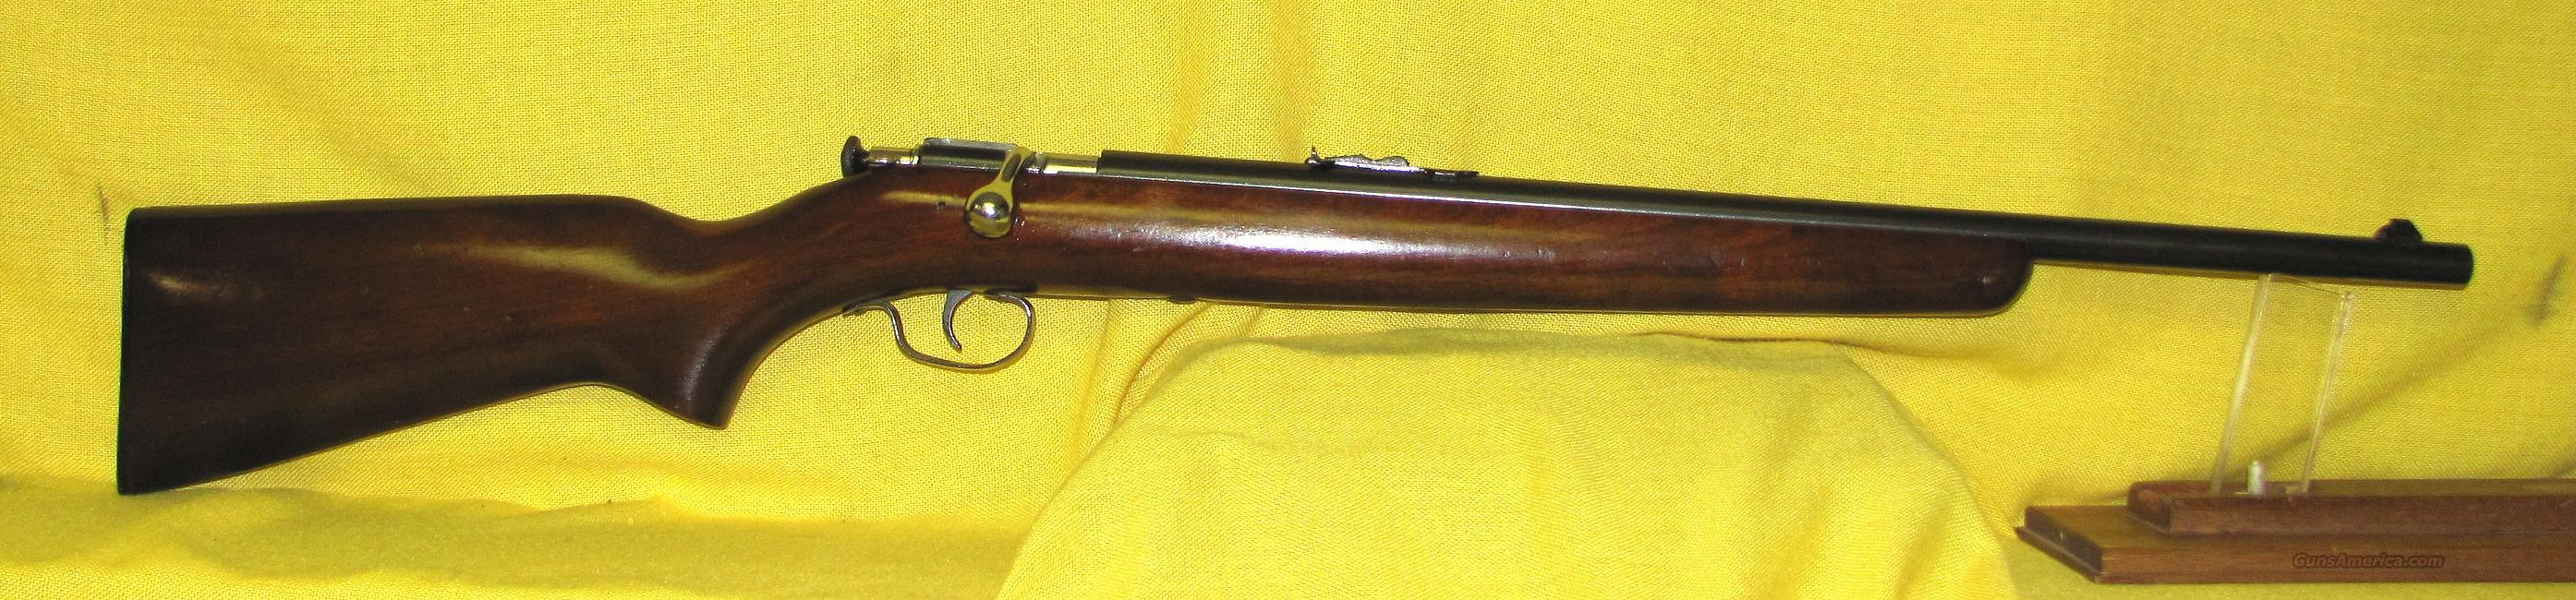 winchester 67a dating One for the winchester lover beautiful 67a safe queen shoots 22 s, l , or lr price is including postage.